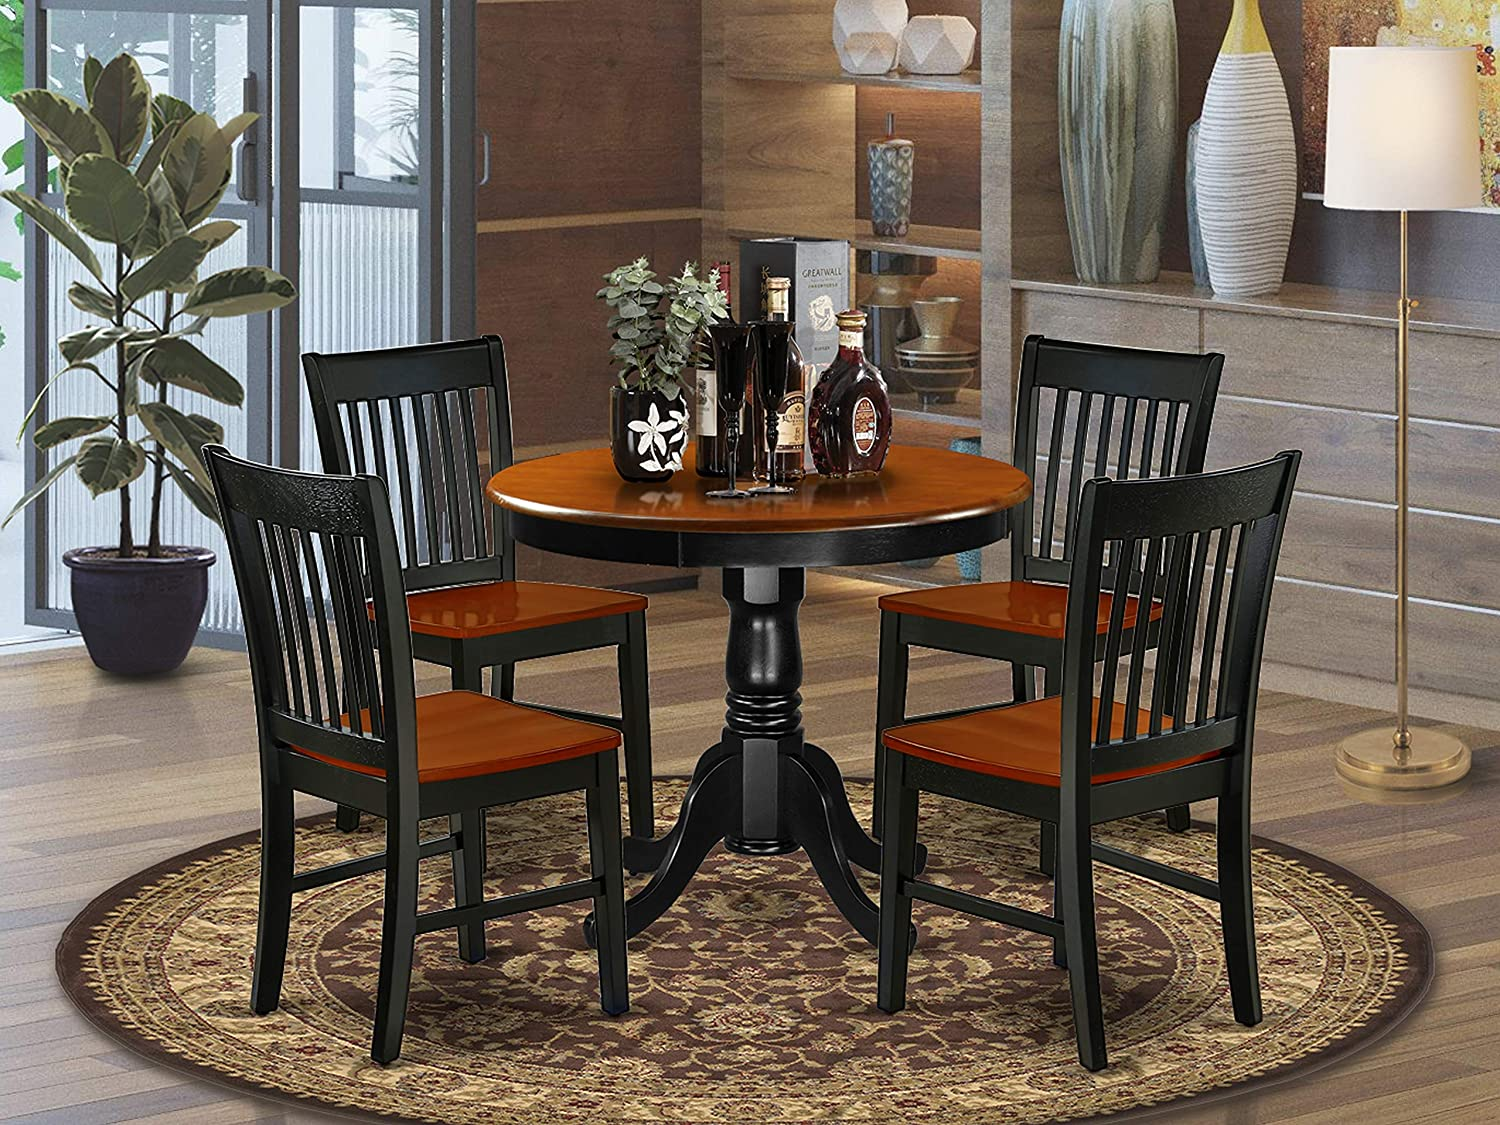 East West Furniture Set 9 Amazing Chairs A Attractive Modern Wooden  Seat Cherry and Black Round Dining Table